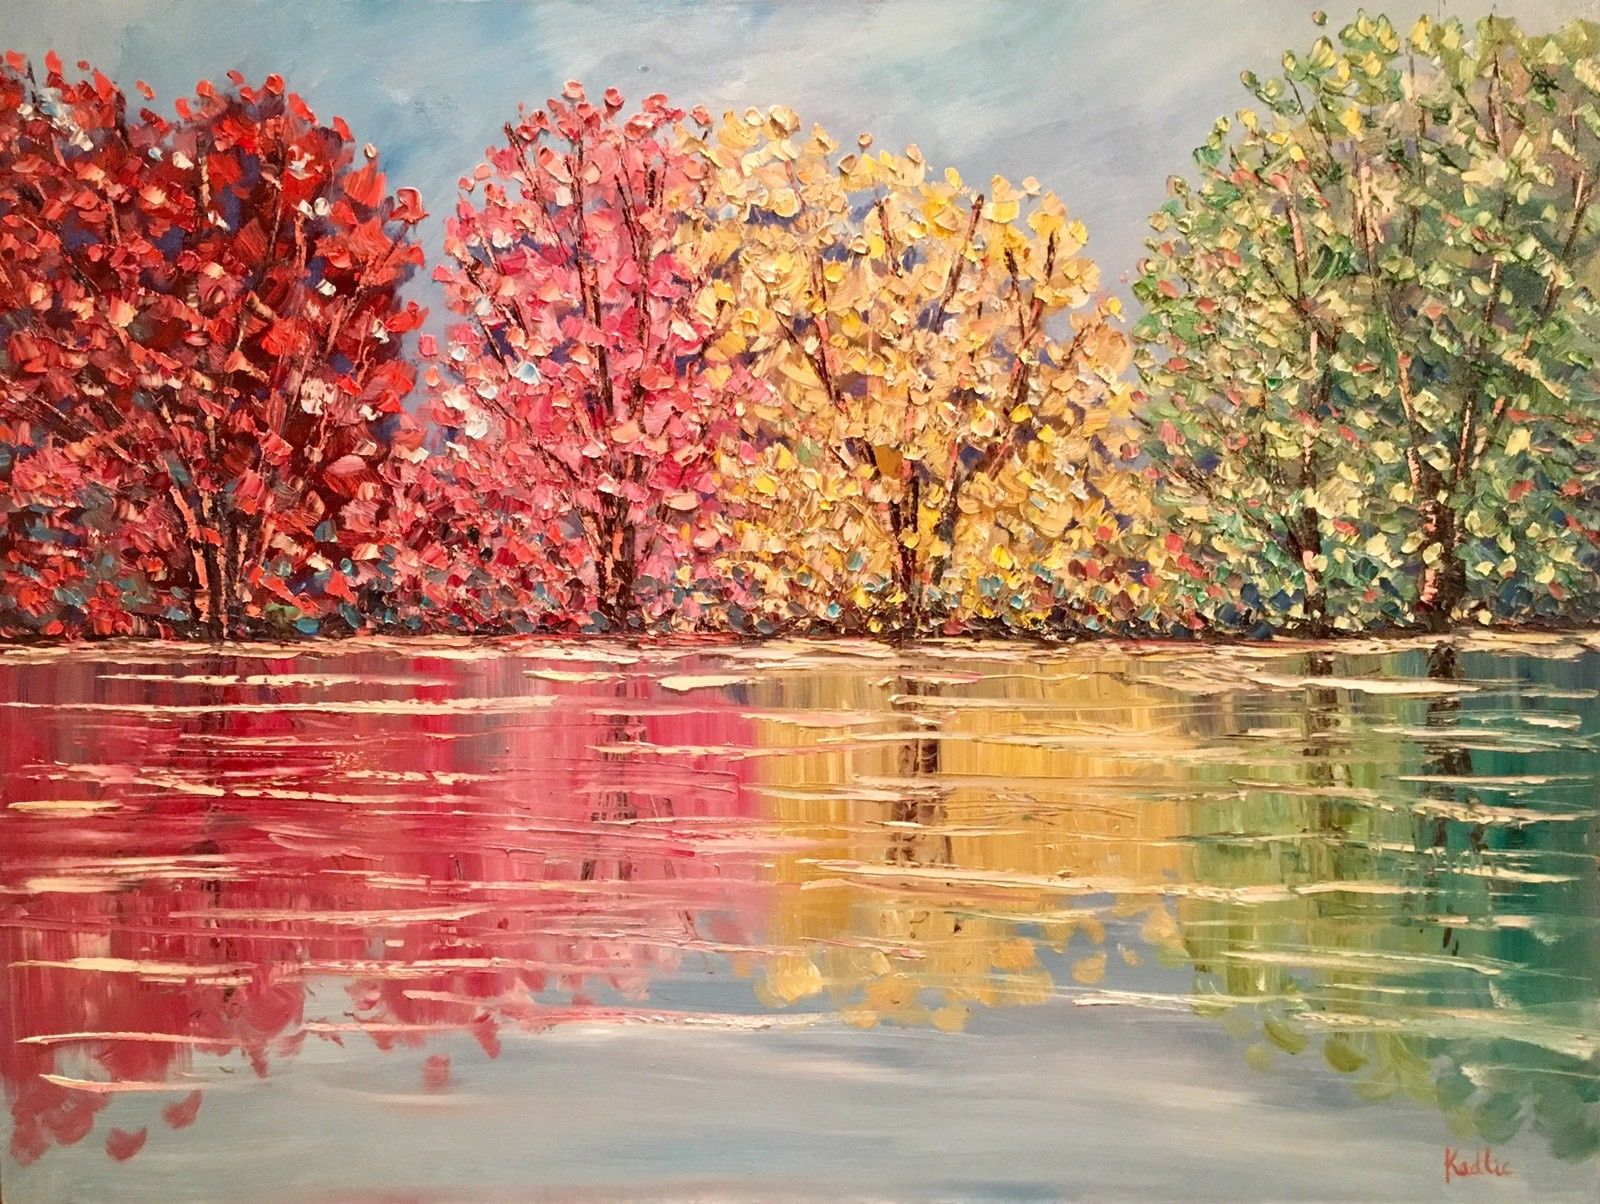 KADLIC Trees Autumn Fall Landscape Original Oil Painting 30x40""